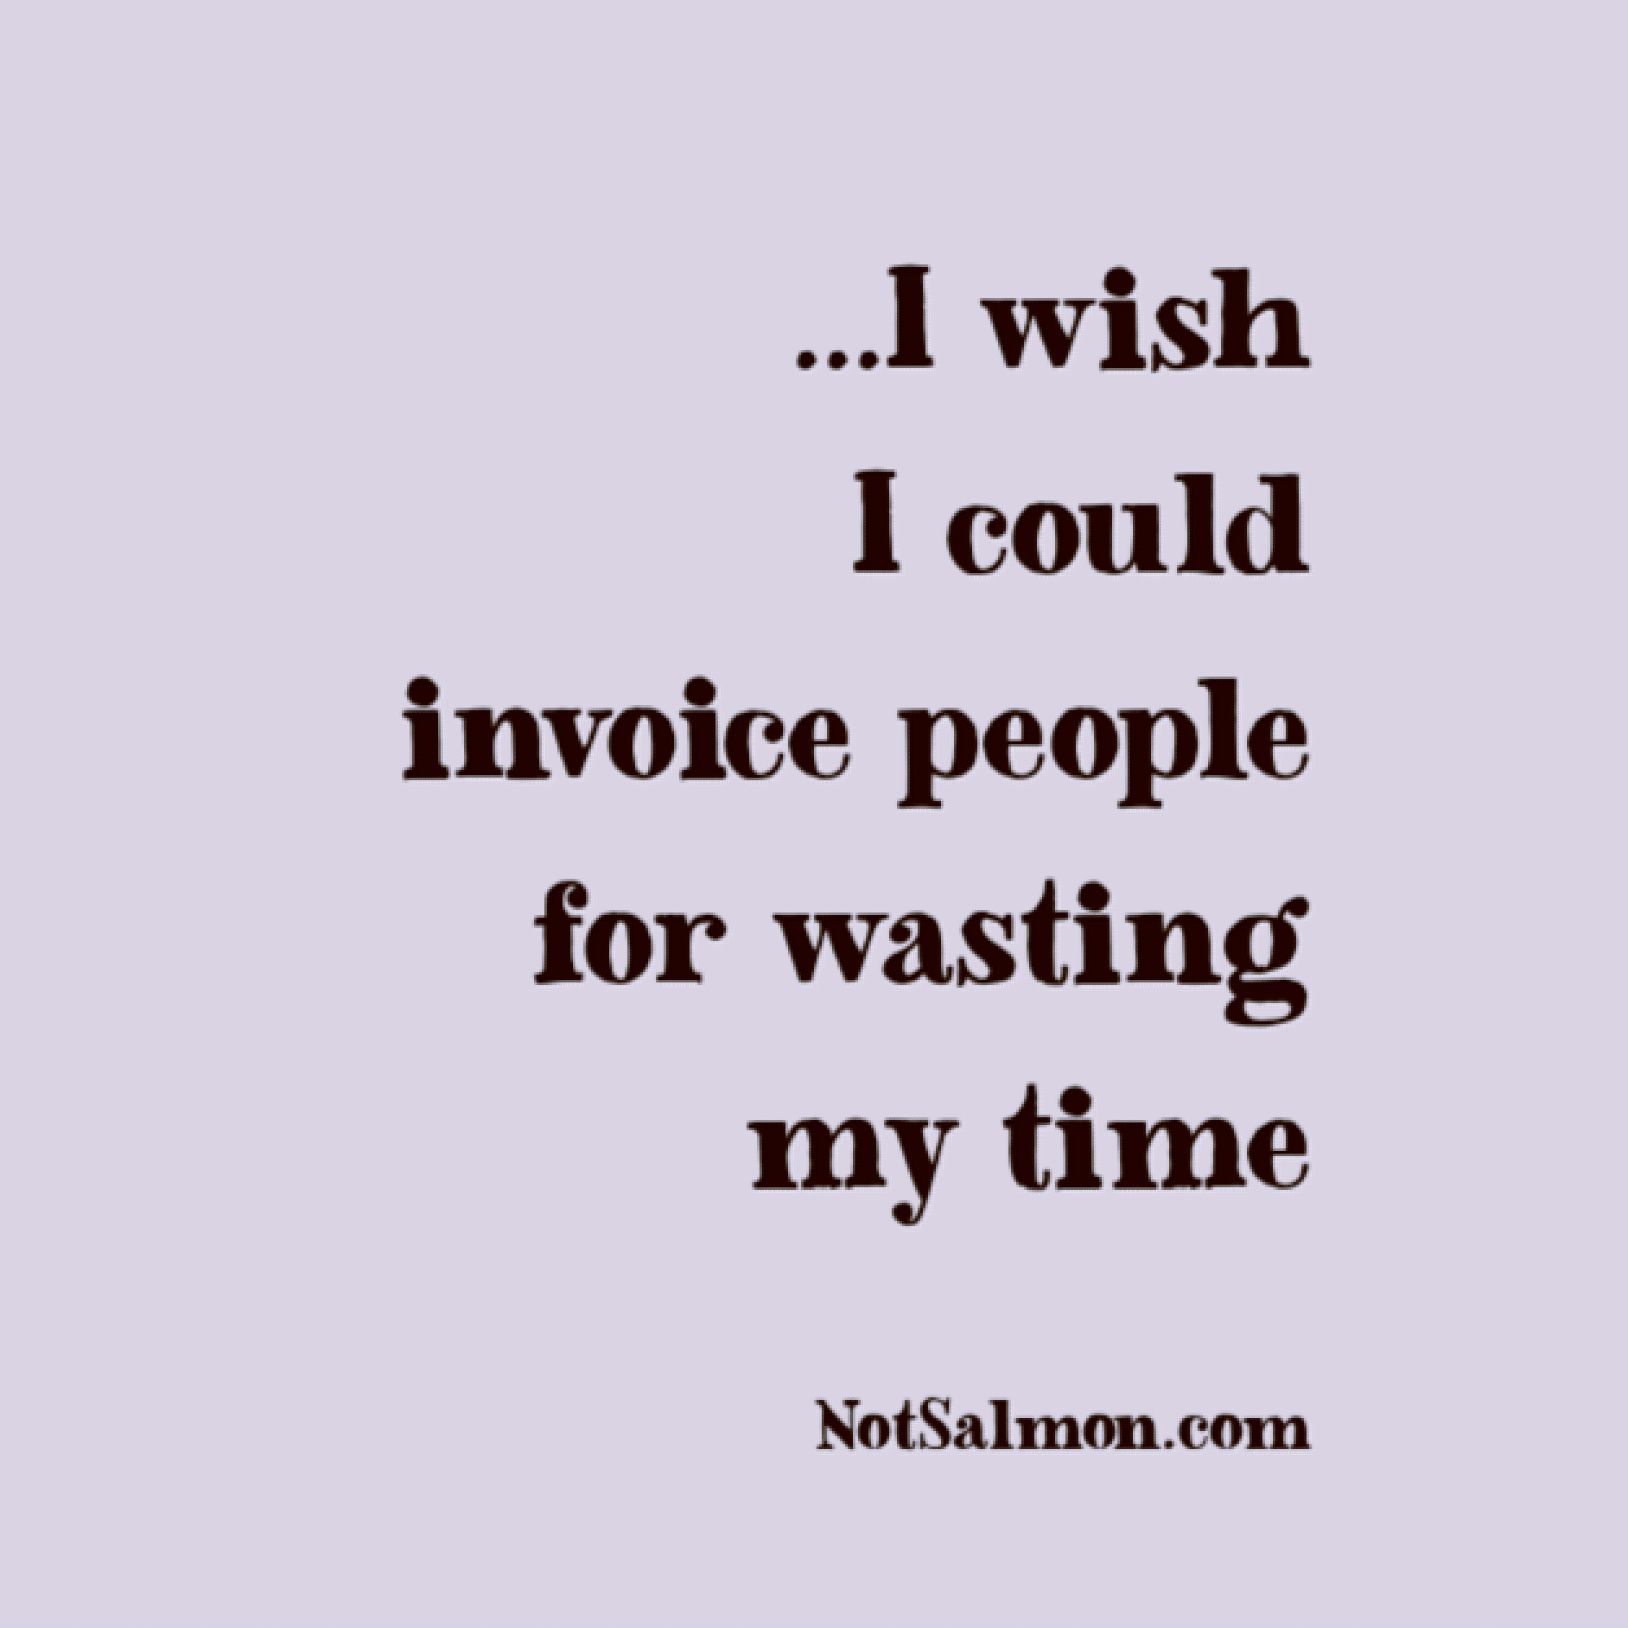 I Wish I Could Invoice People For Wasting My Time Funny Lol Quotes Snarky Quotes Silly Quotes Me Time Quotes